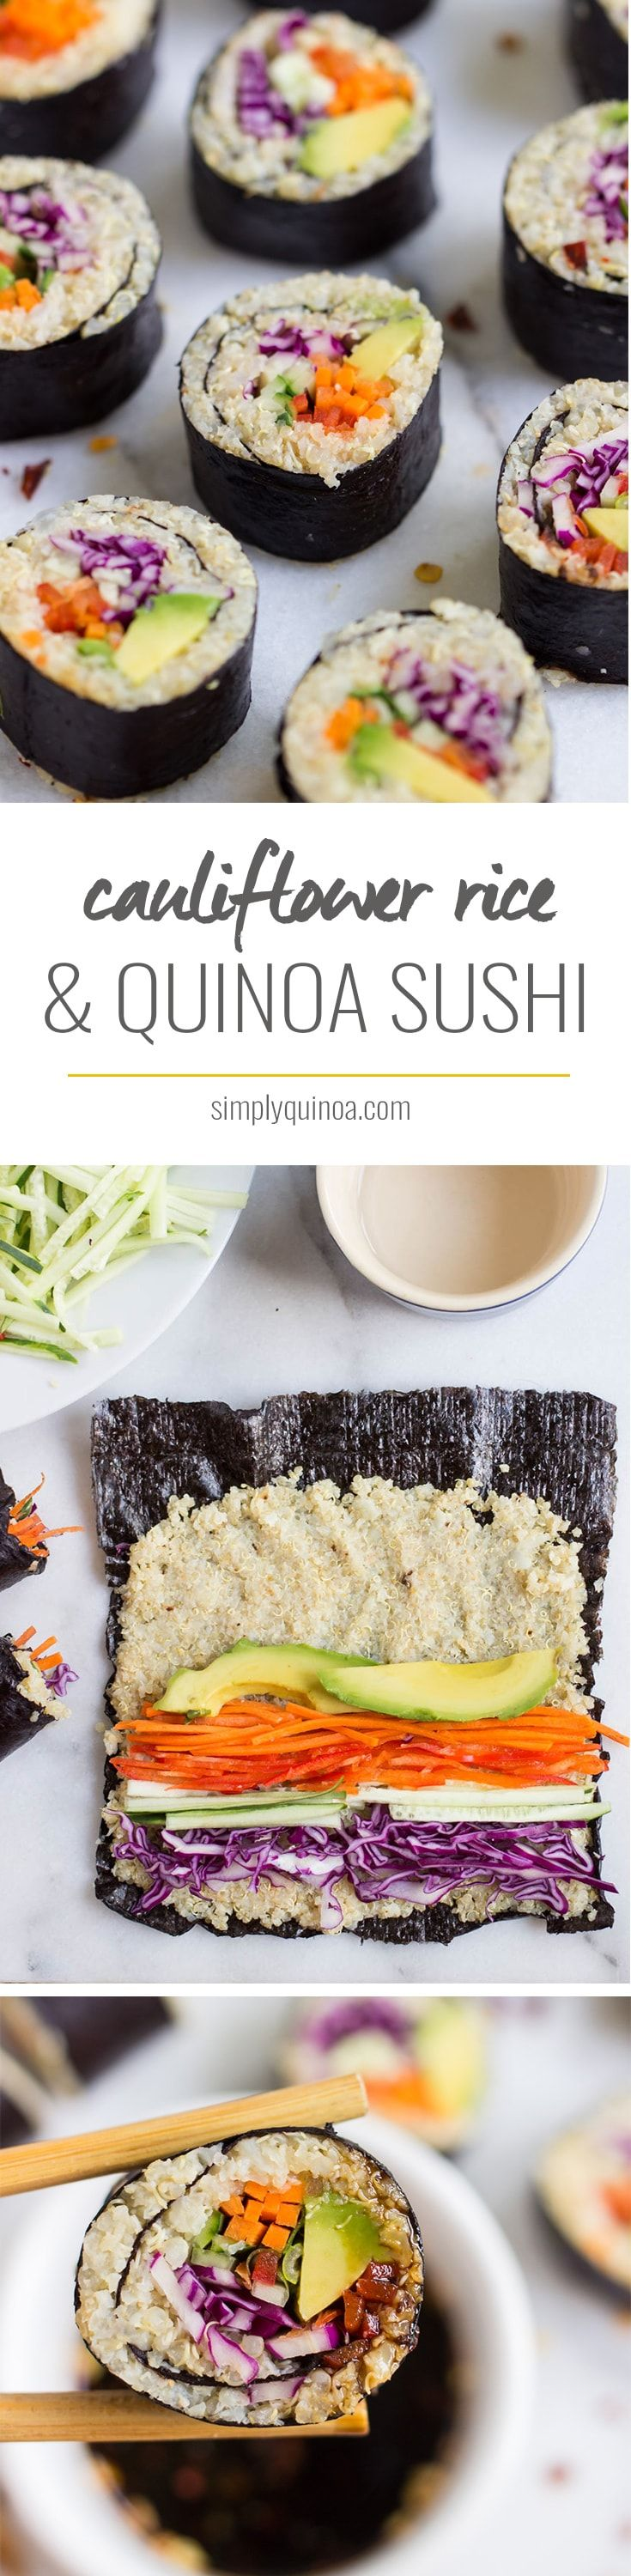 Cauliflower Rice + Quinoa Sushi packed full of fresh veggies!